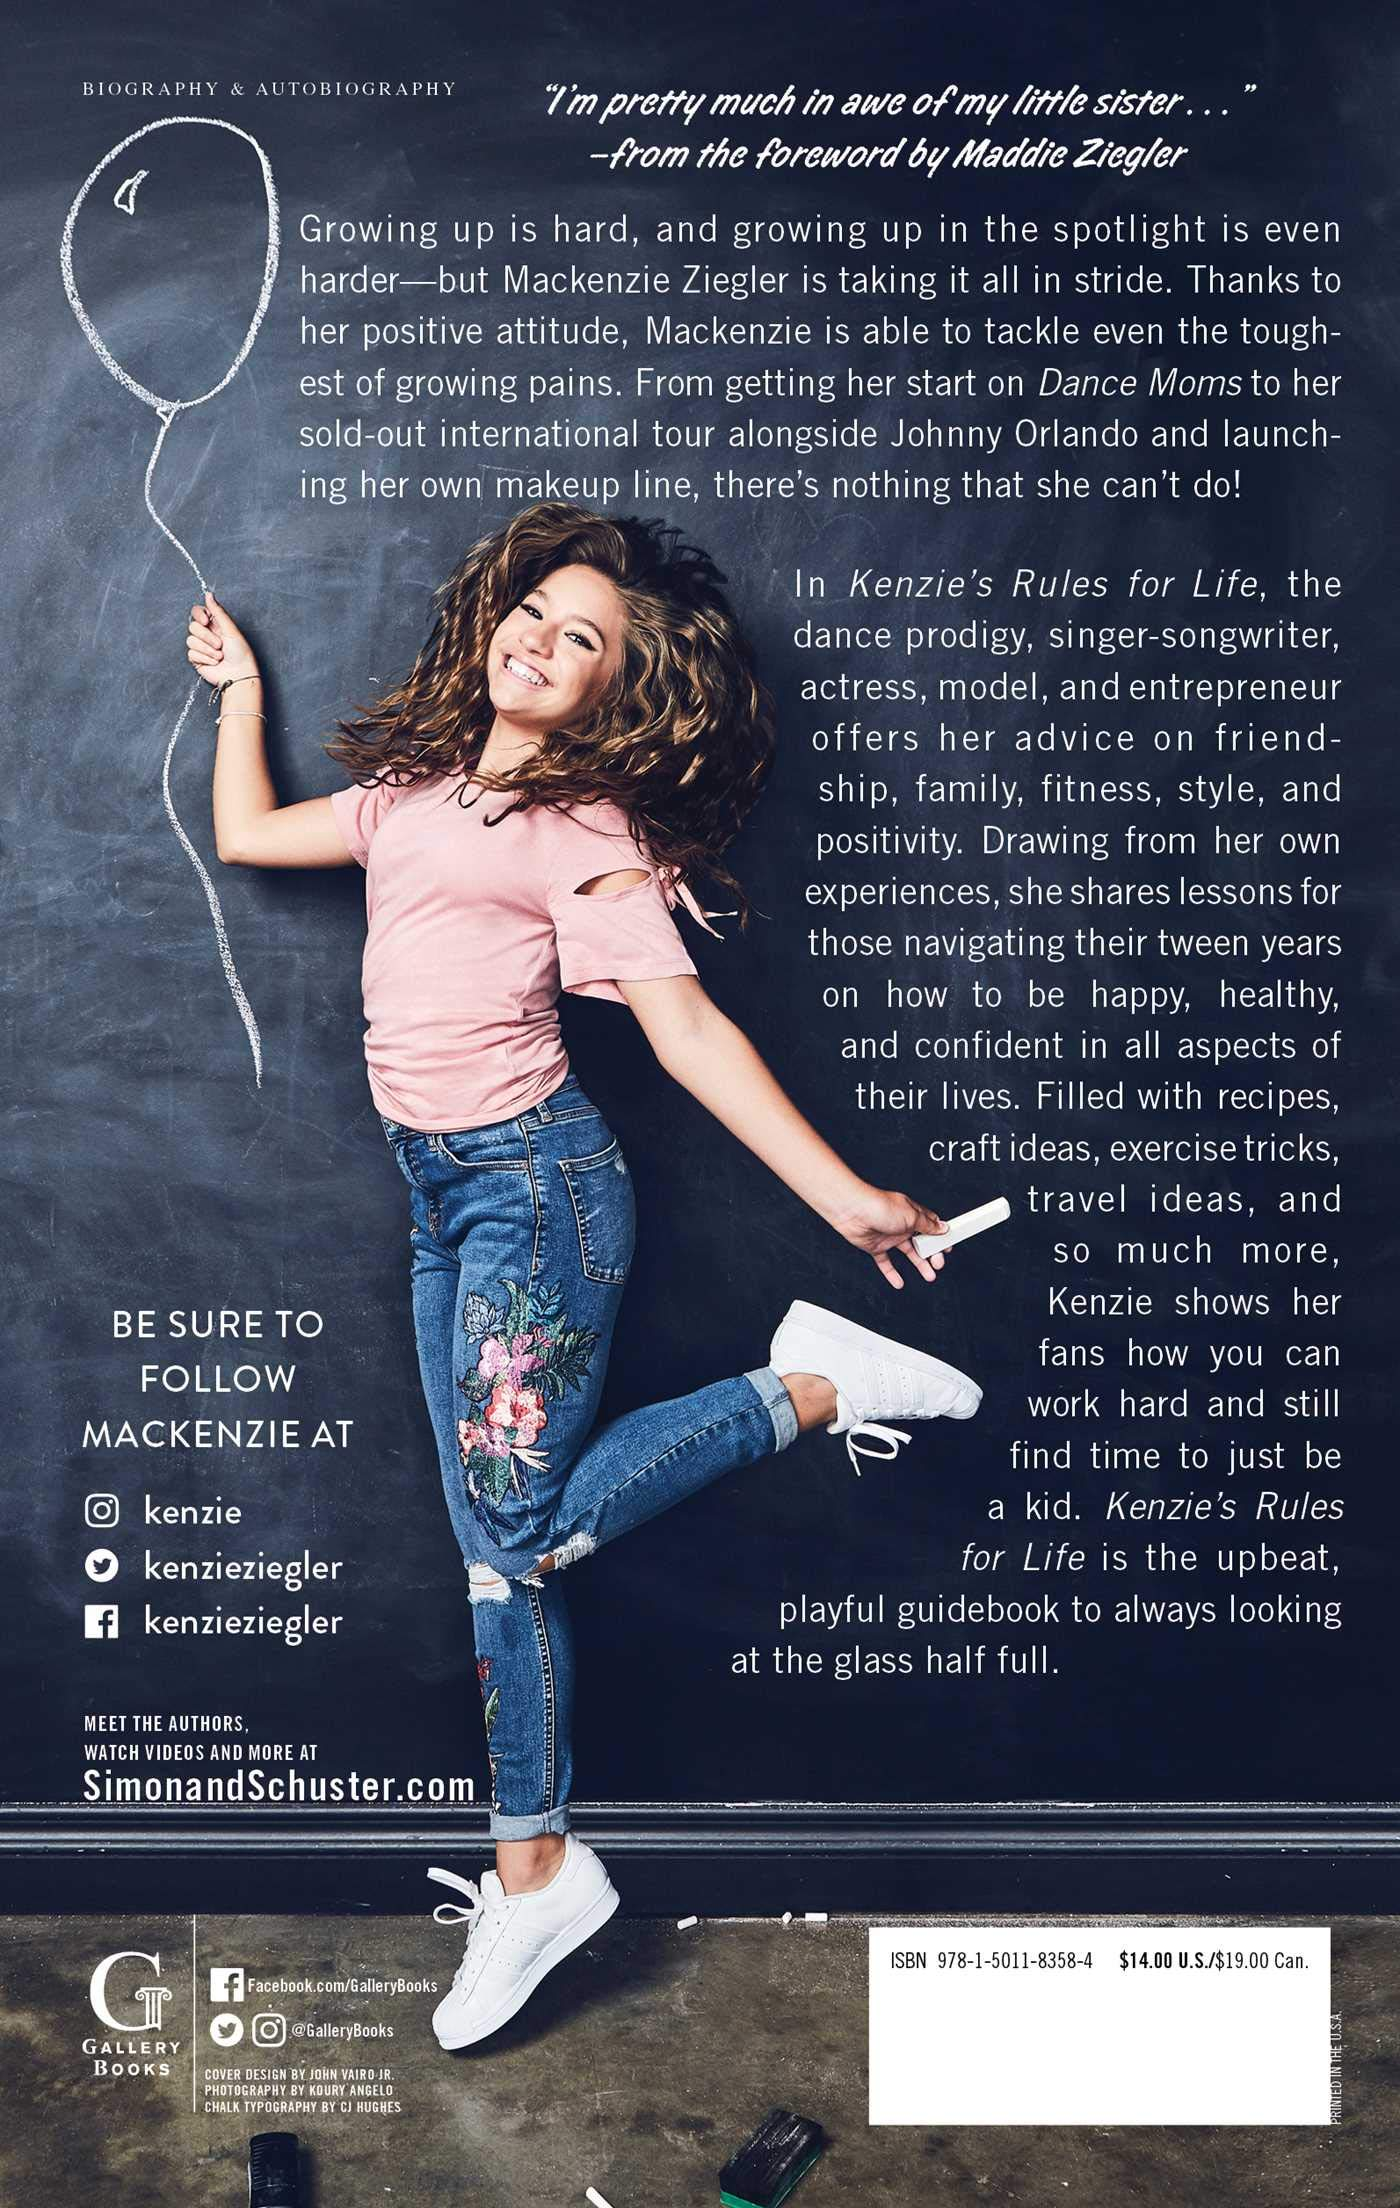 Amazon.com: Kenzie's Rules for Life: How to Be Happy, Healthy, and Dance to Your  Own Beat (9781501183584): Mackenzie Ziegler, Maddie Ziegler: Books